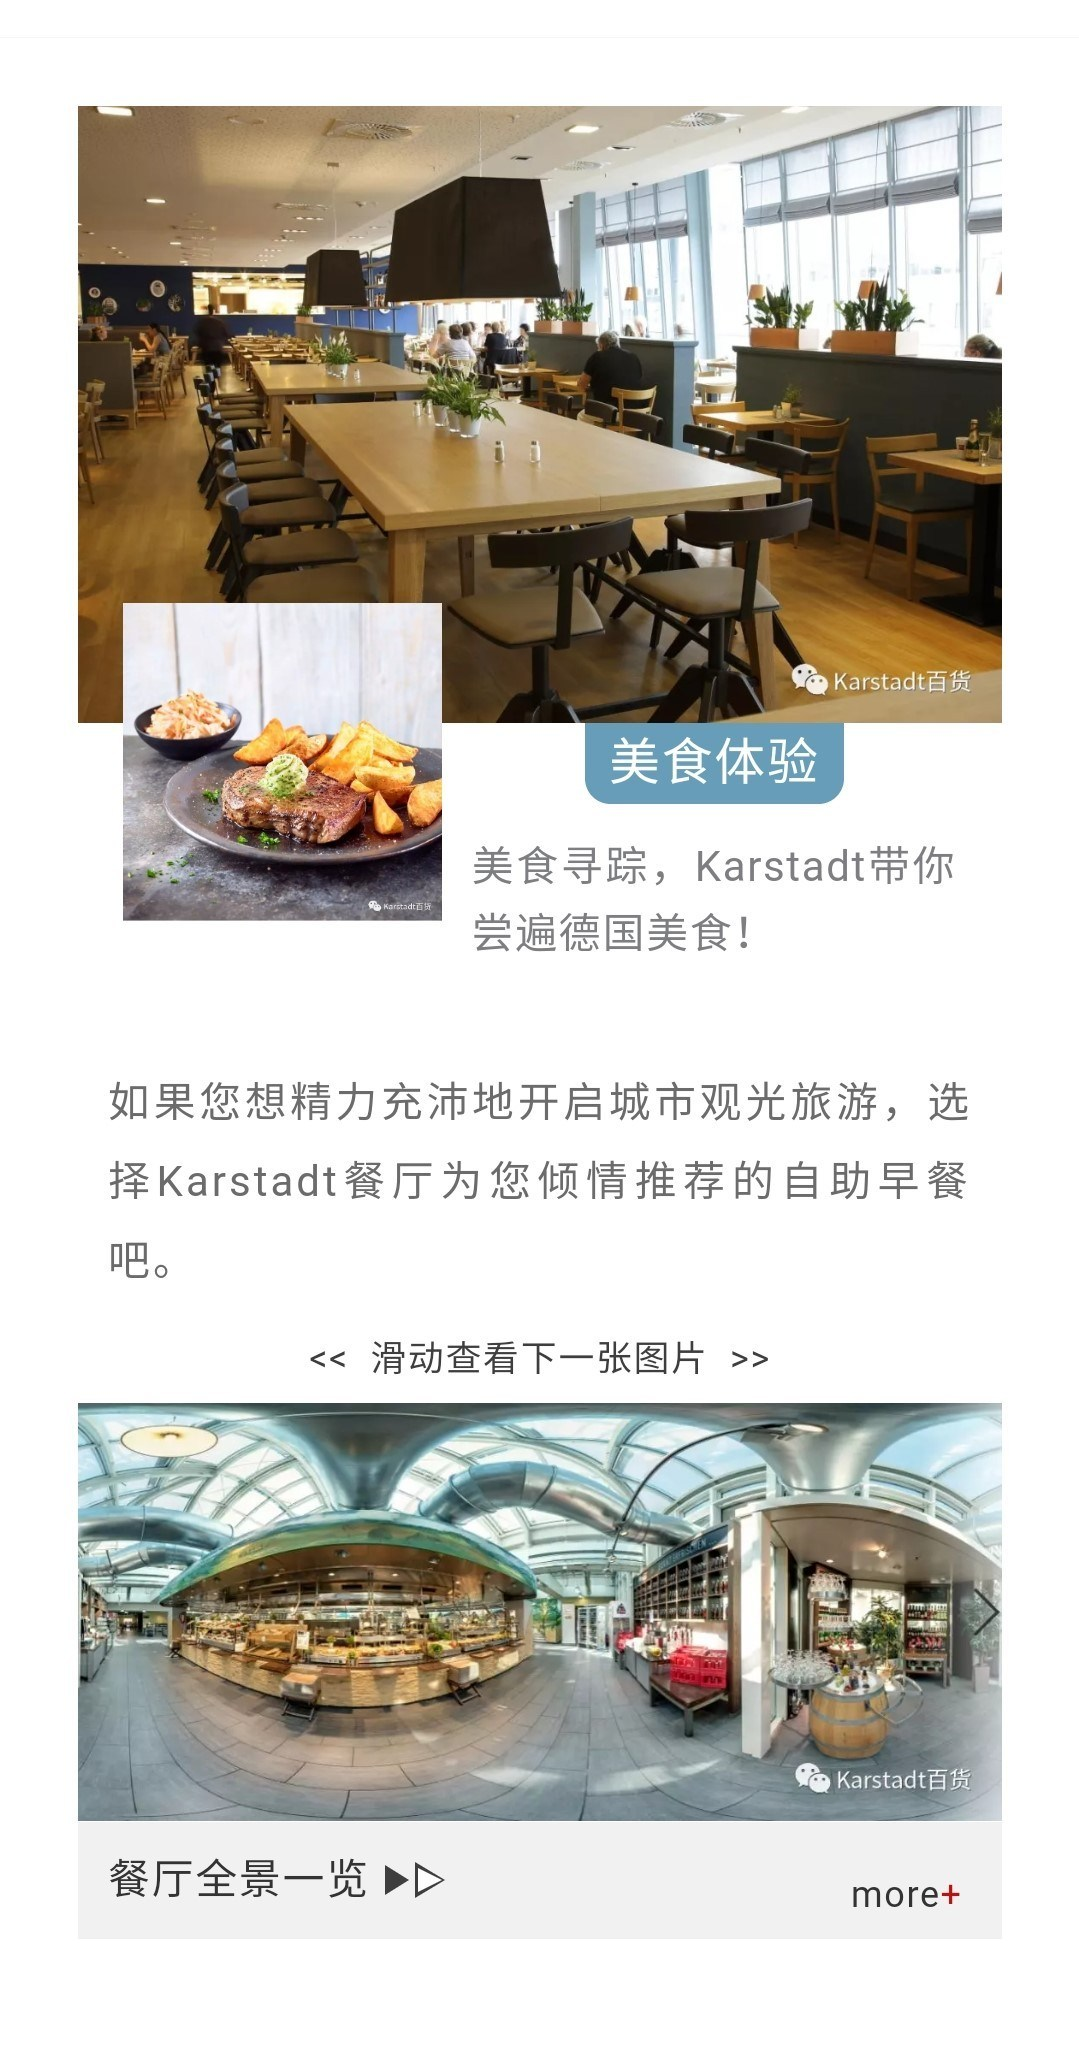 karstadt restauration Wechat Mini-program for Hospitality